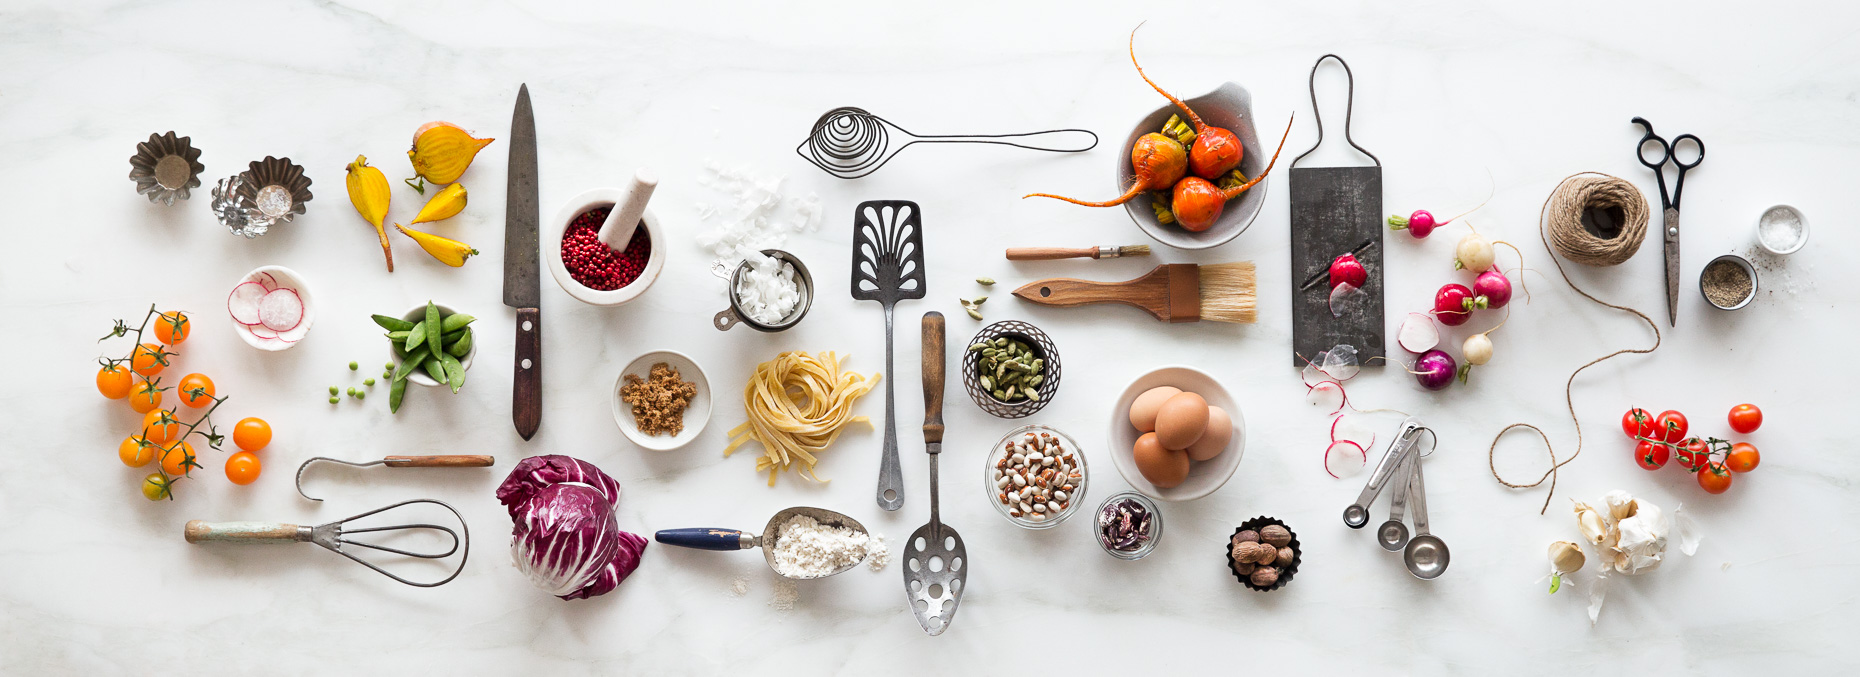 Munchery Baking Ingredients